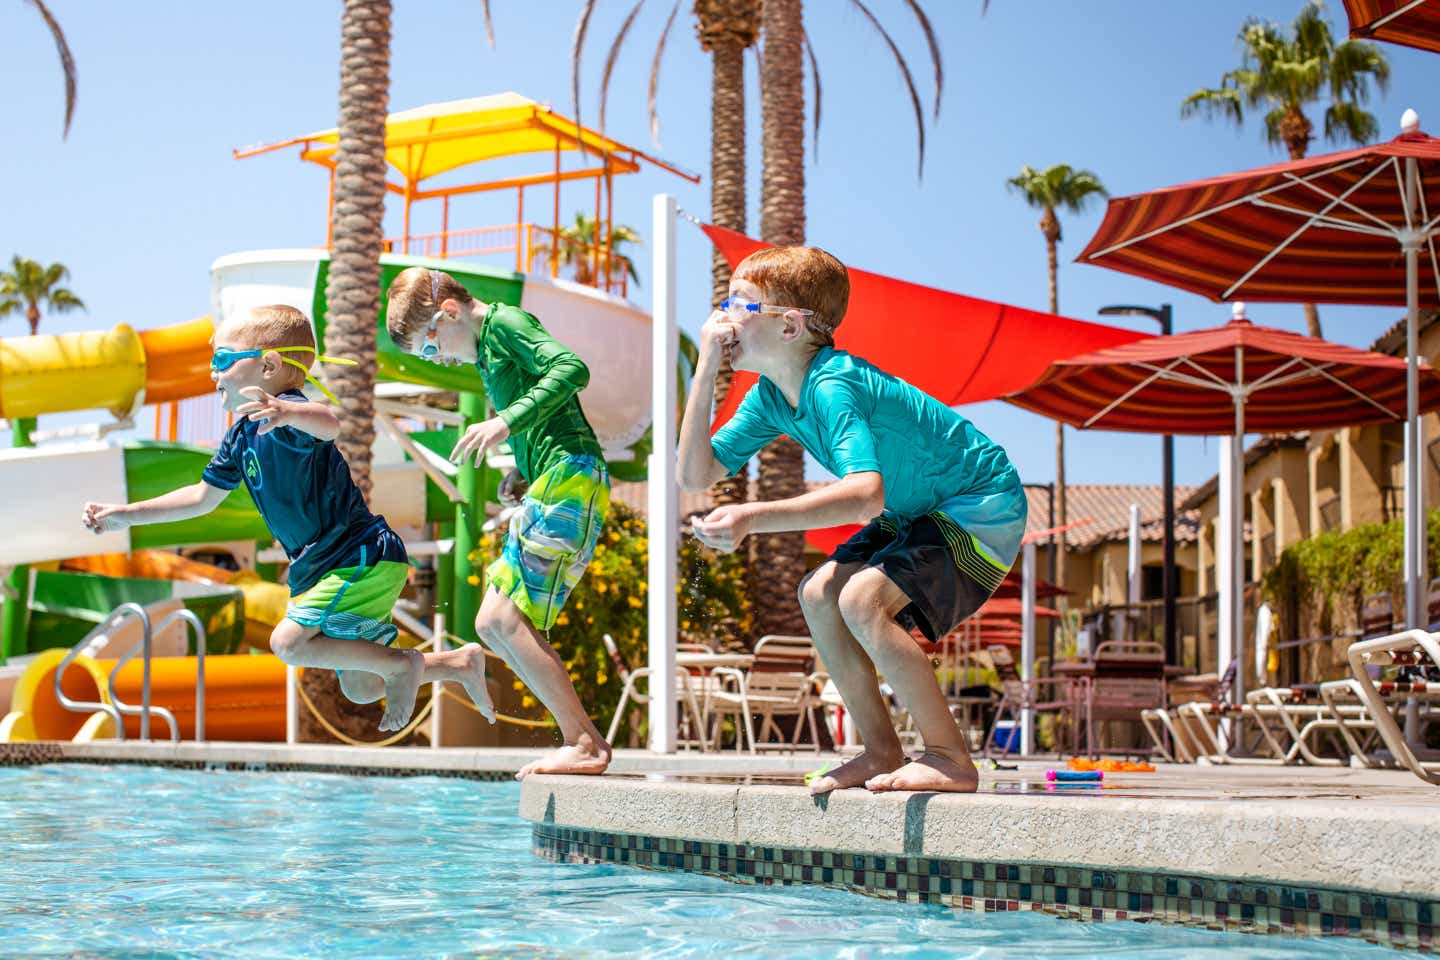 The Averett boys, wearing all their swimwear, jump into the pool near our water slides at our Scottsdale Resort.